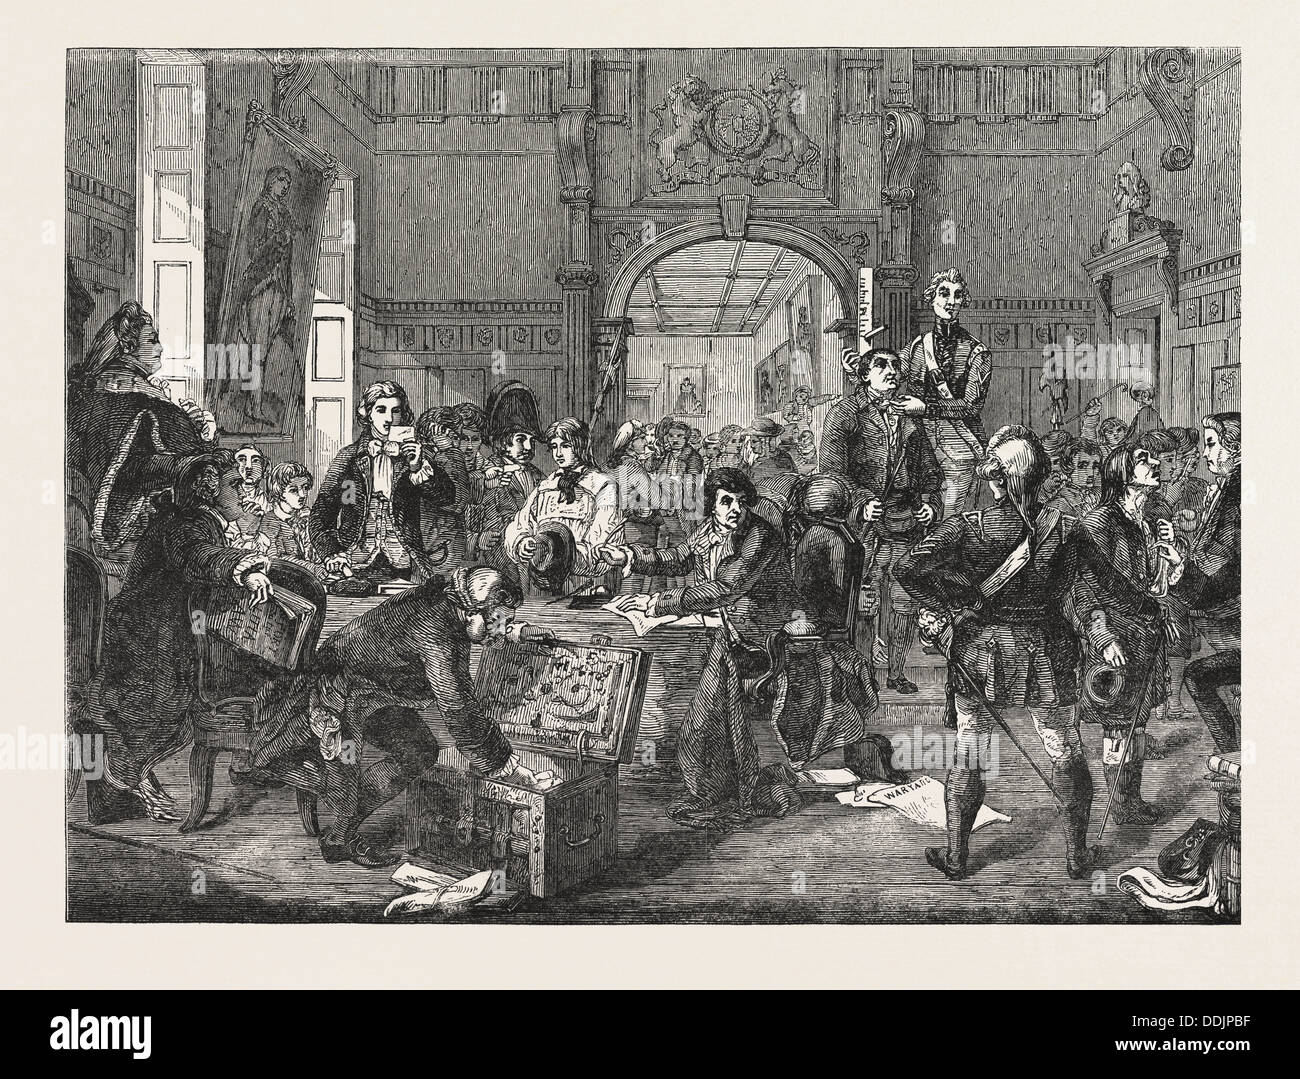 DRAWING FOR THE MILITIA. PAINTED BY J. PHILLIP. EXHIBITION OF THE ROYAL ACADEMY - Stock Image